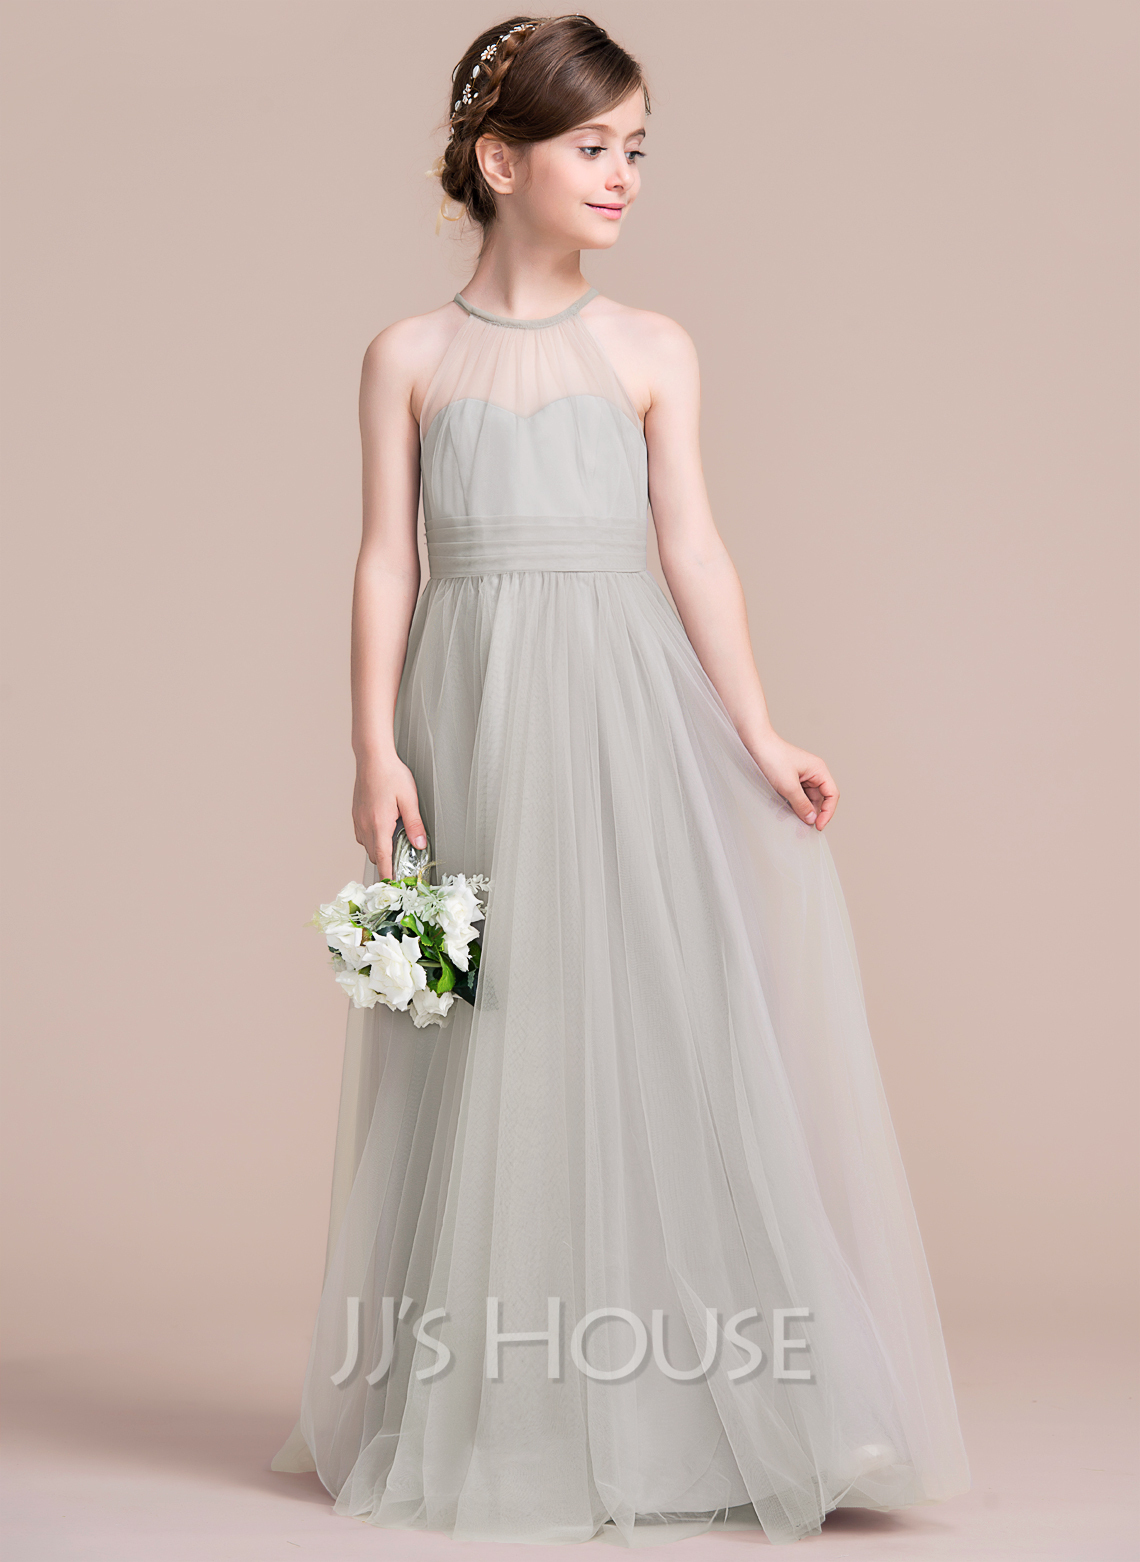 Custom made junior bridesmaid dresses jjshouse a lineprincess scoop neck floor length tulle junior bridesmaid dress with ruffle ombrellifo Choice Image